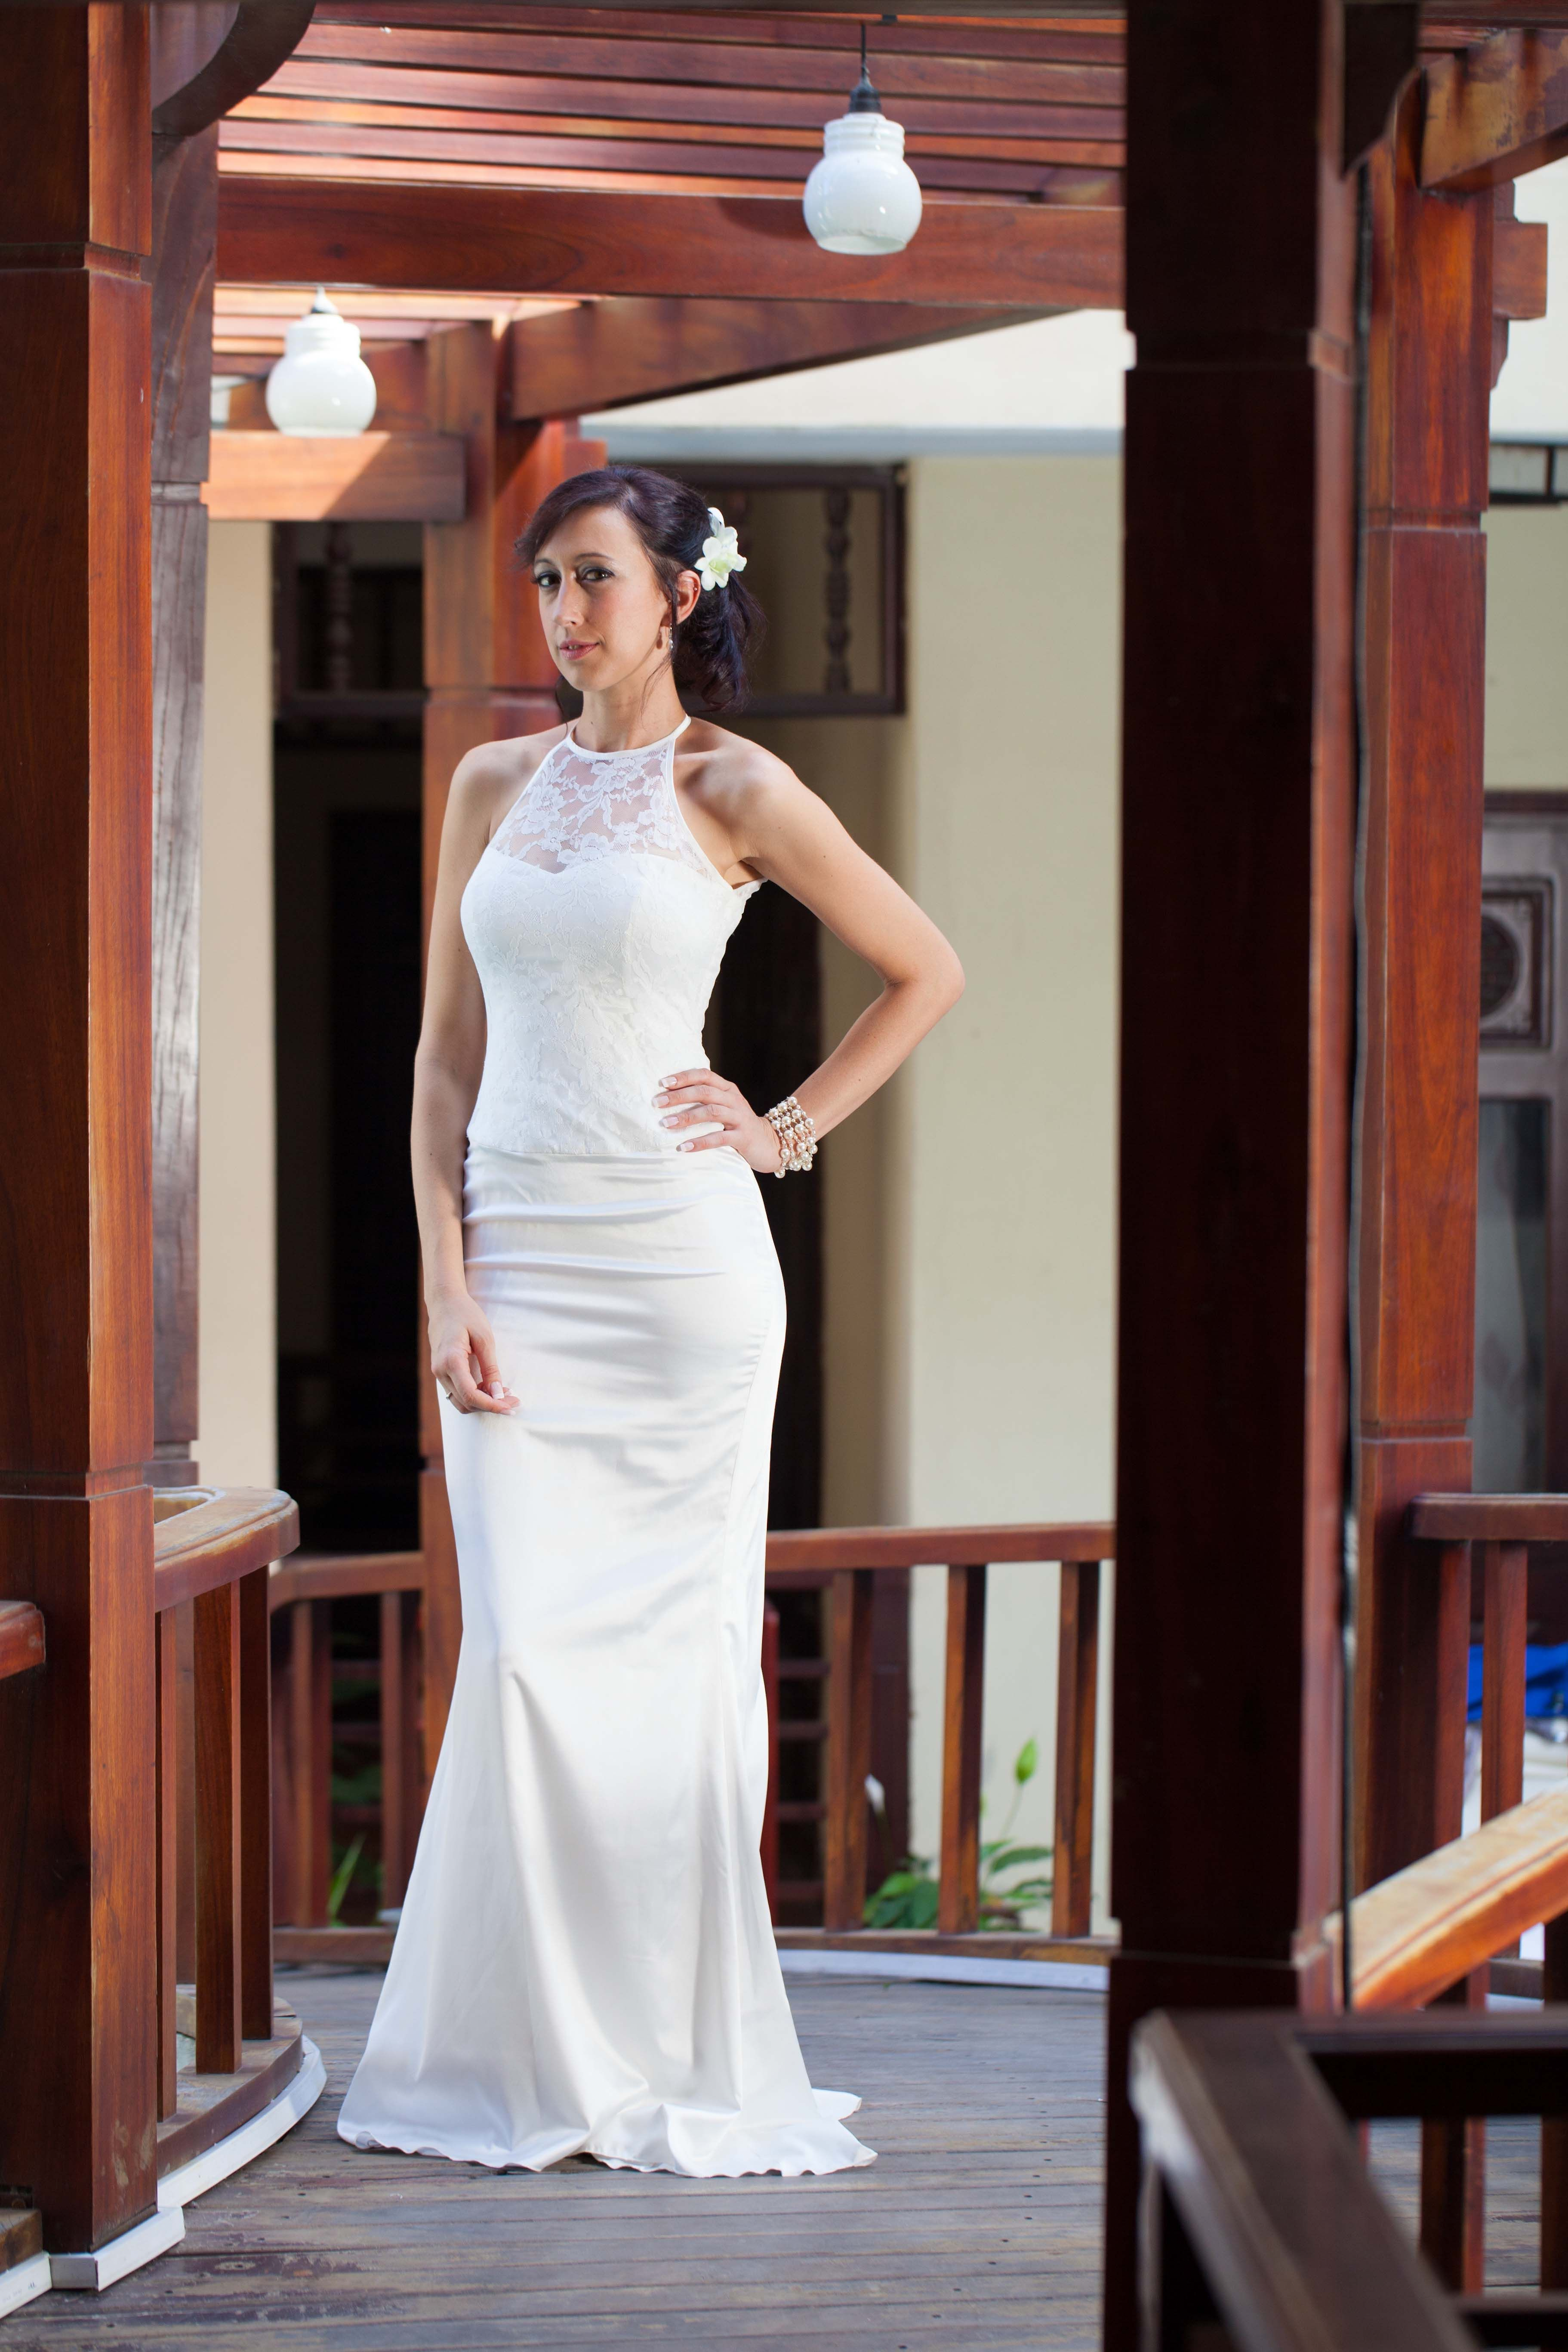 A Silk And Lace Wedding Dress Designed Tailored In Hoi An Simply Stunning